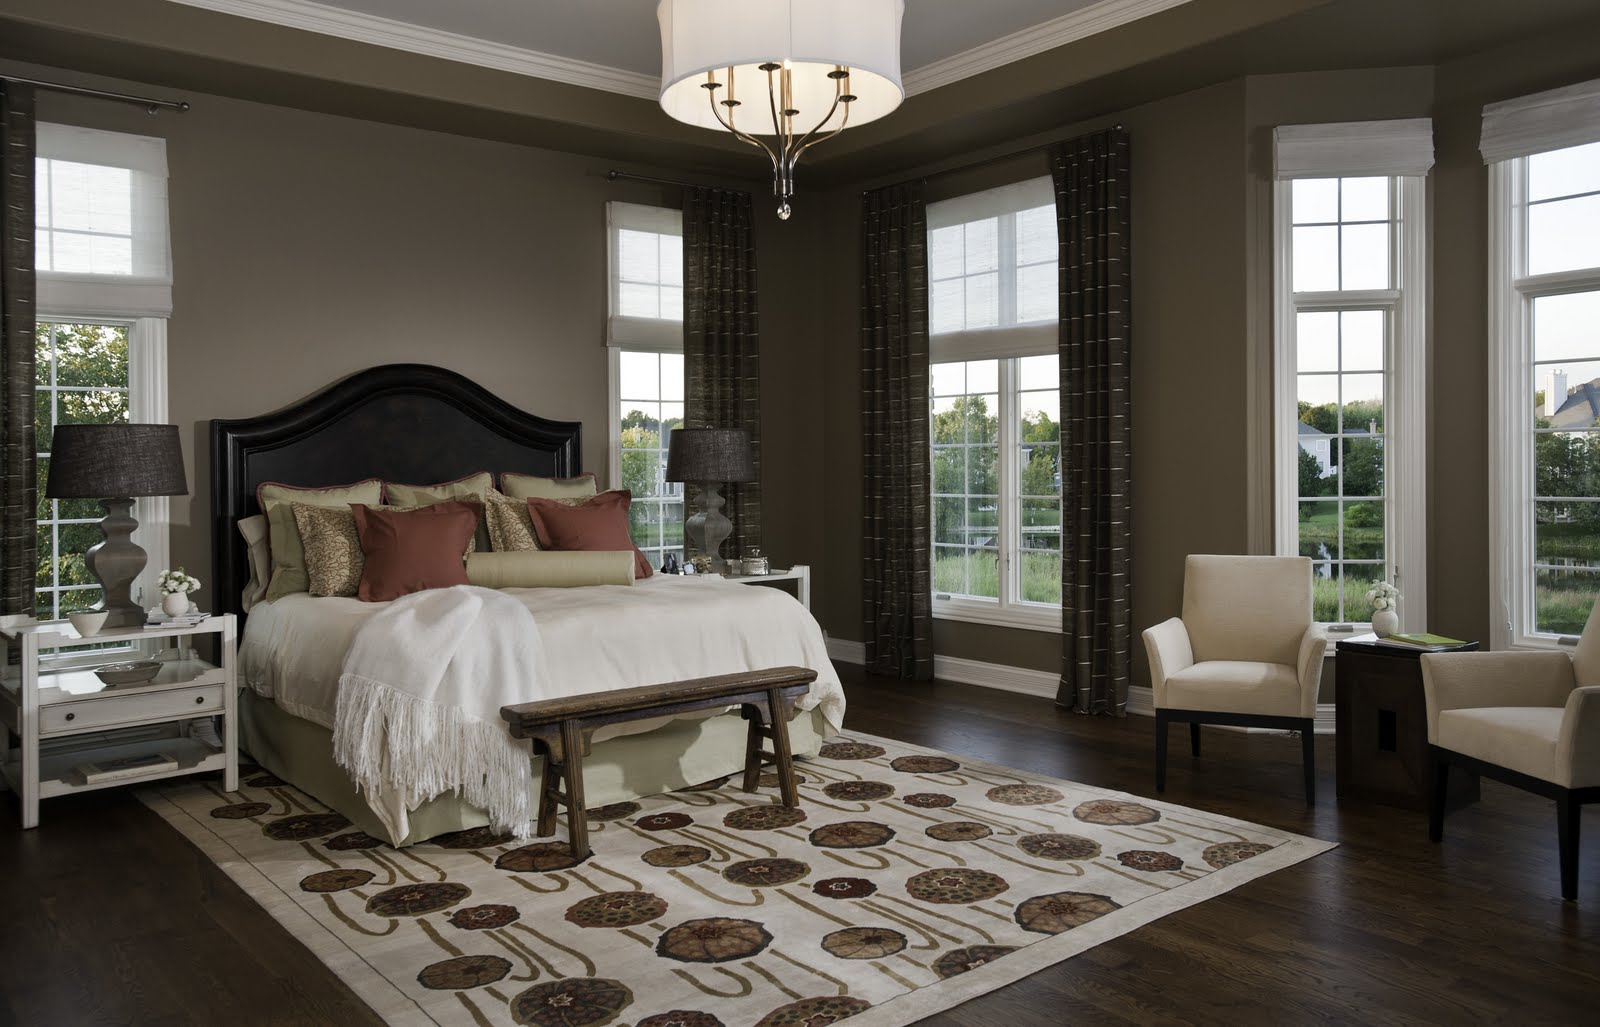 Charmant Master Bedroom Window Treatment Designs